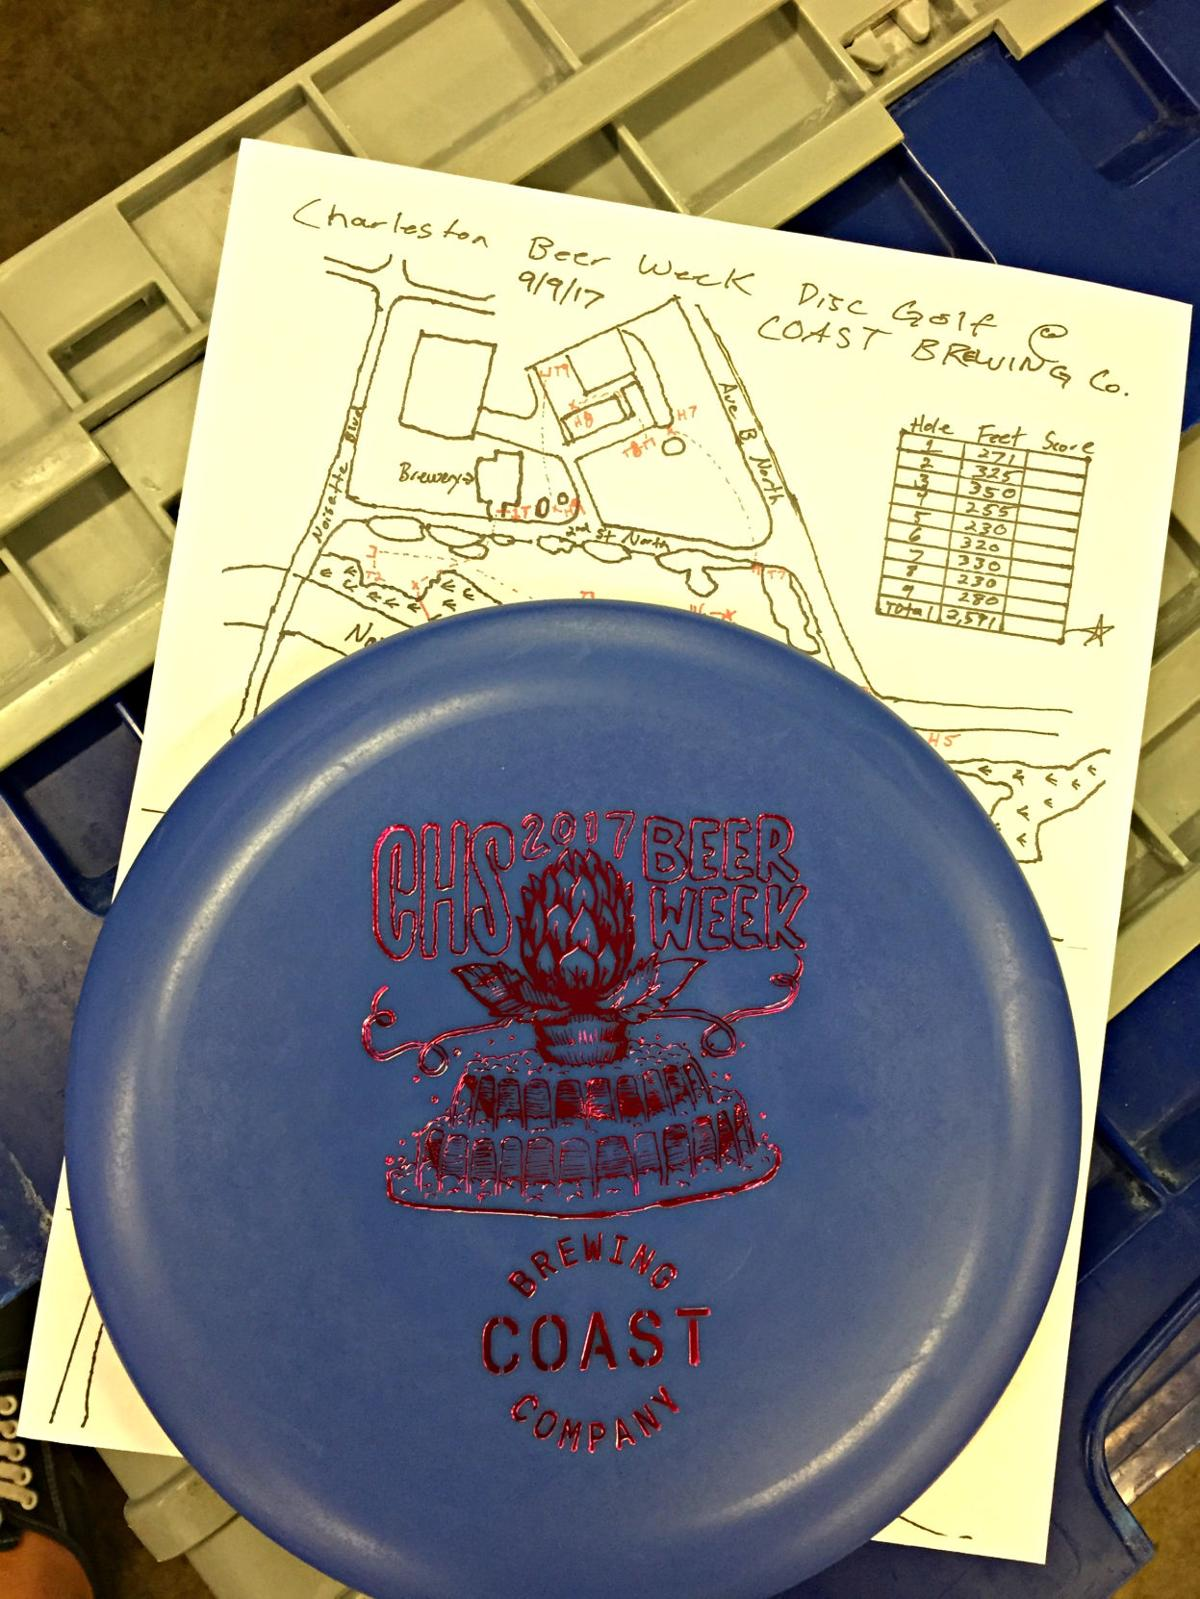 COAST hosted a disc golf tournament for Charleston Beer Week